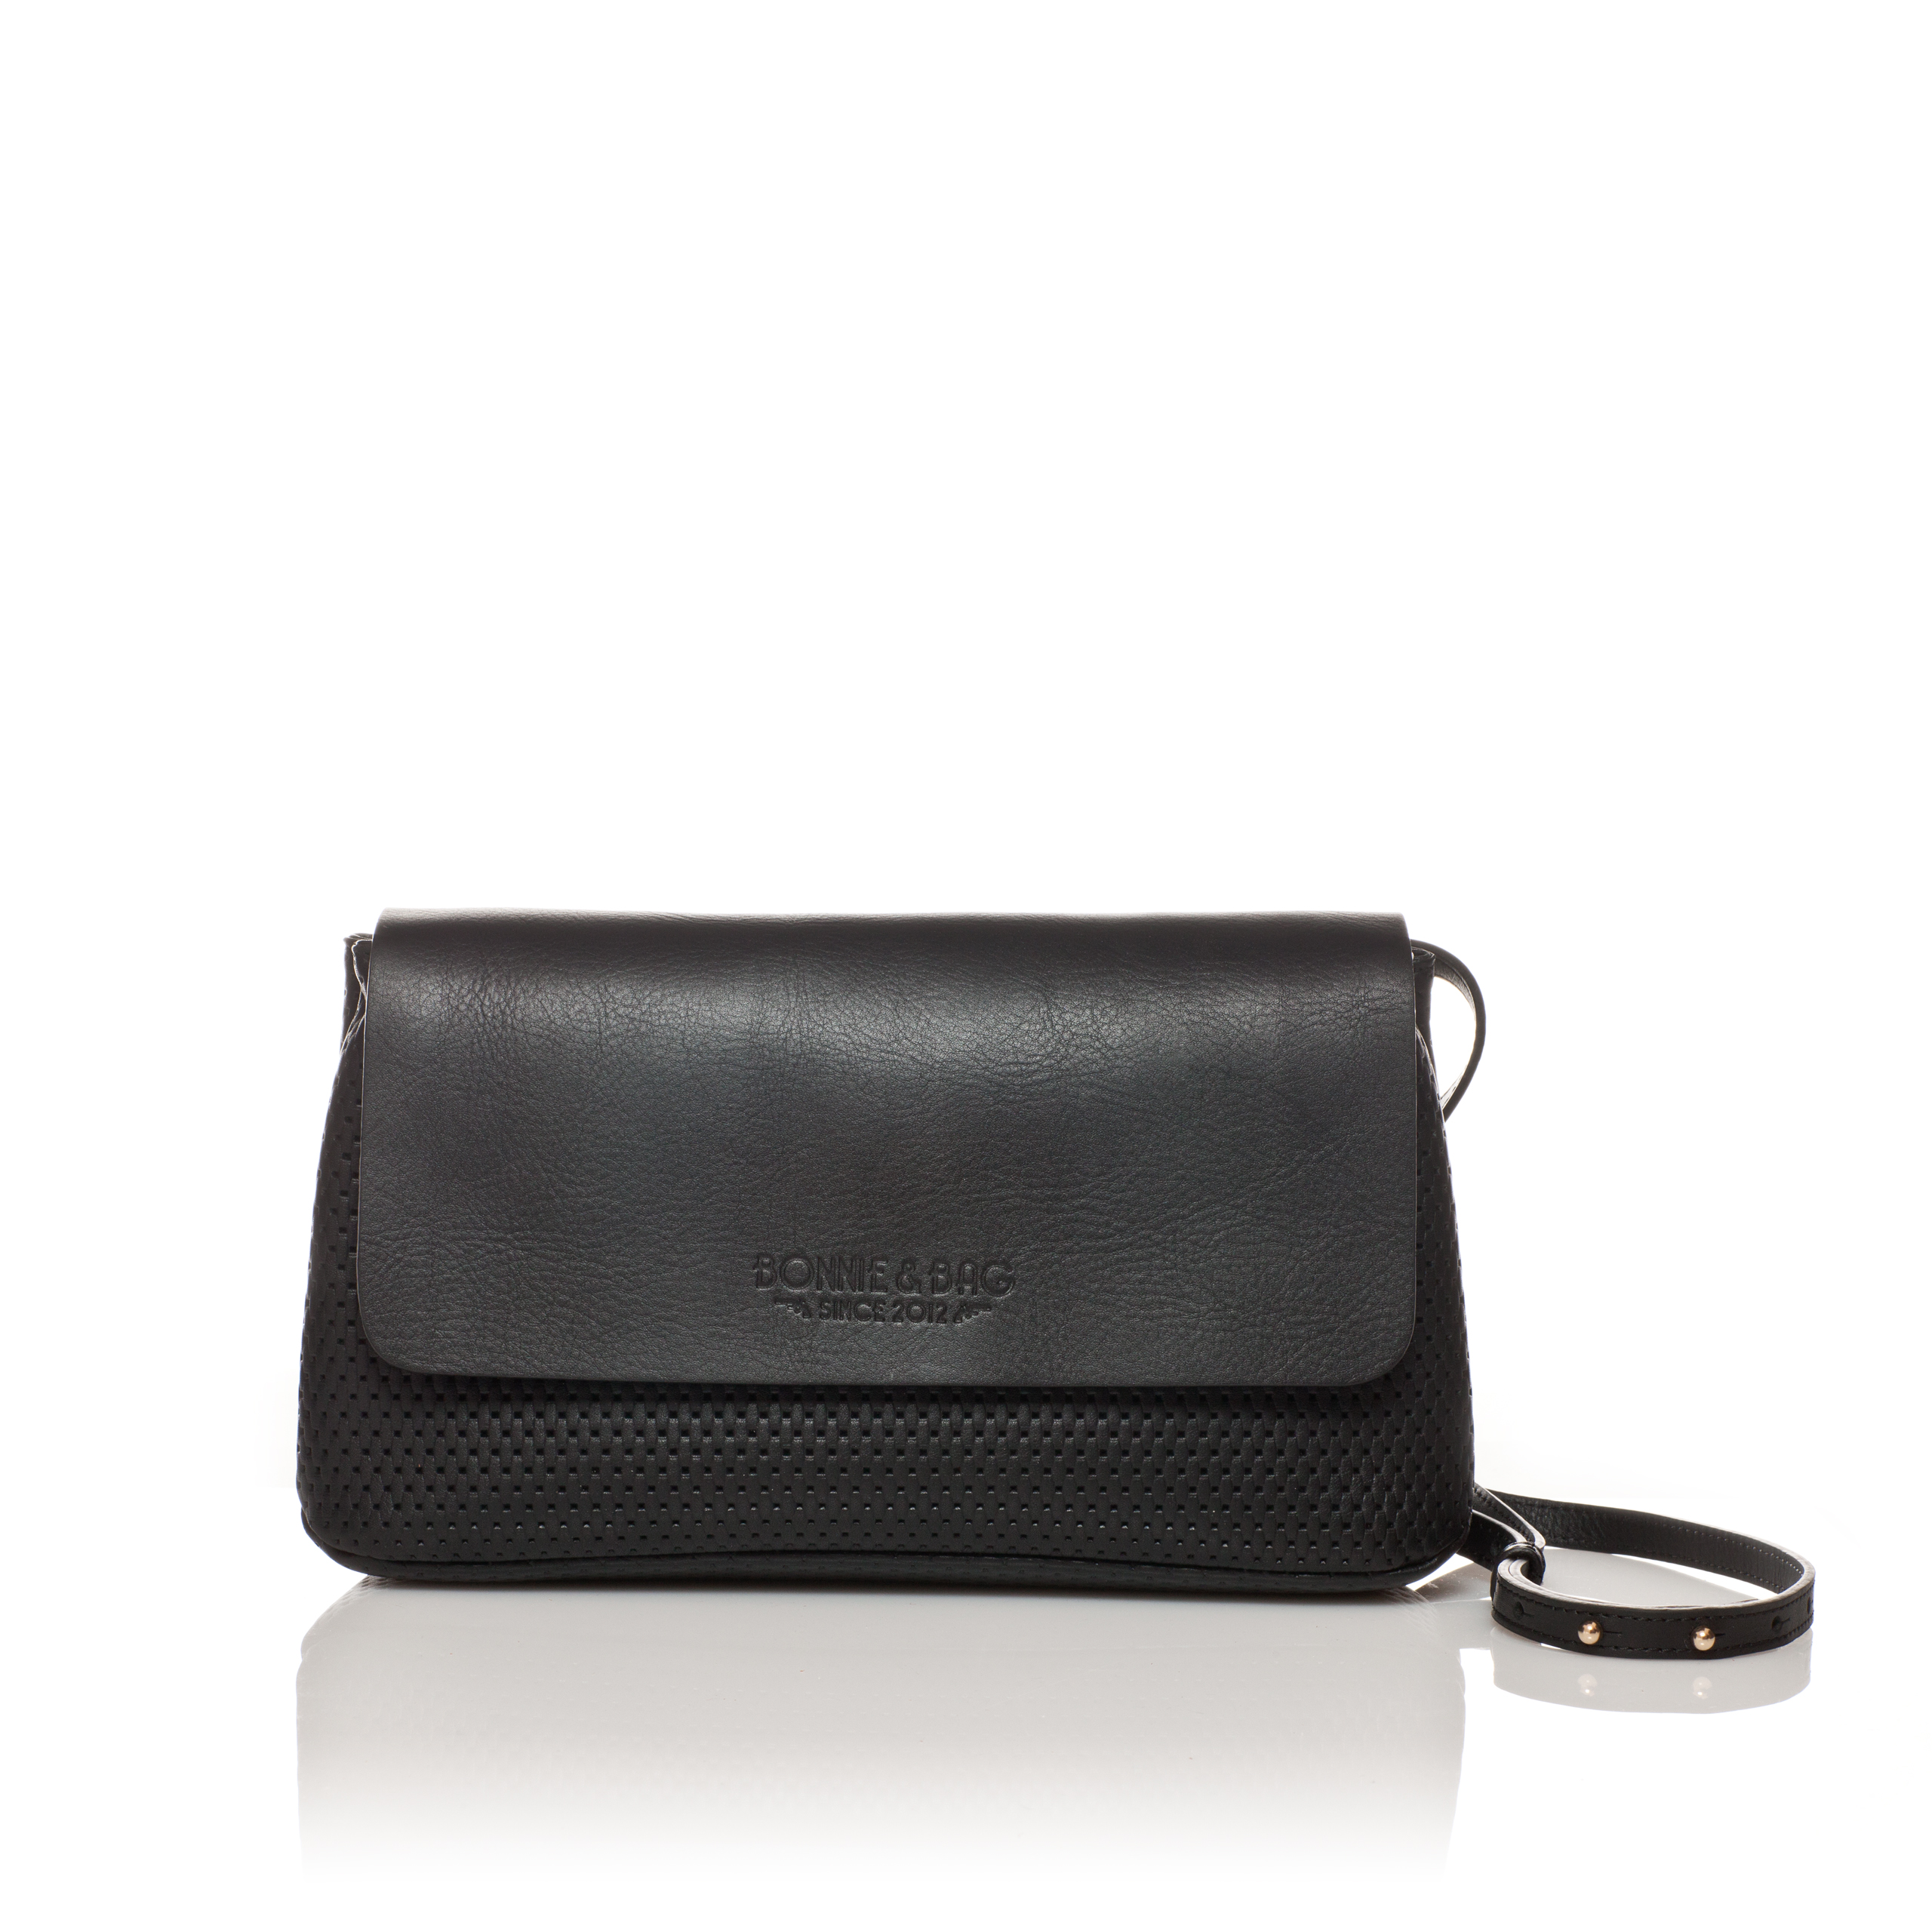 Sac Bandoulière Bonnie - Noir - Bonnie and bag d6771584f85